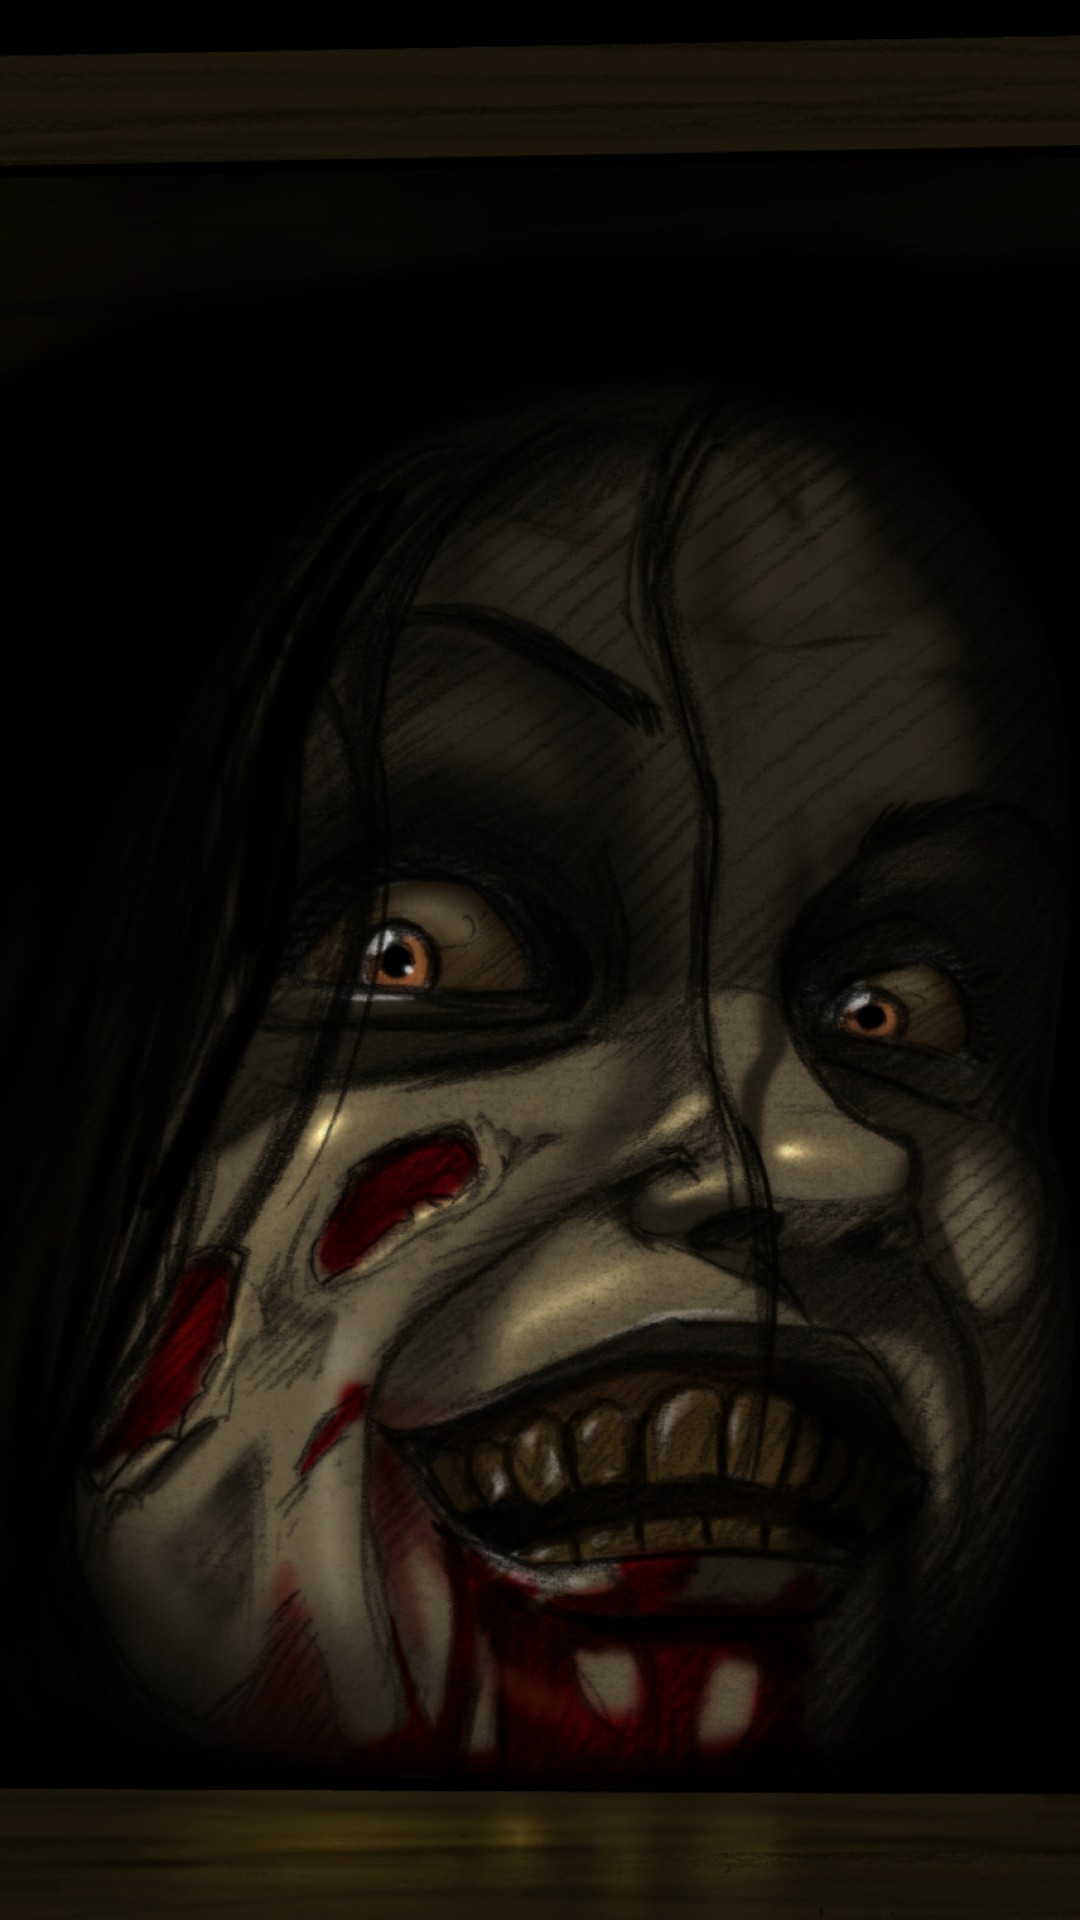 horror wallpaper 183�� download free amazing wallpapers for